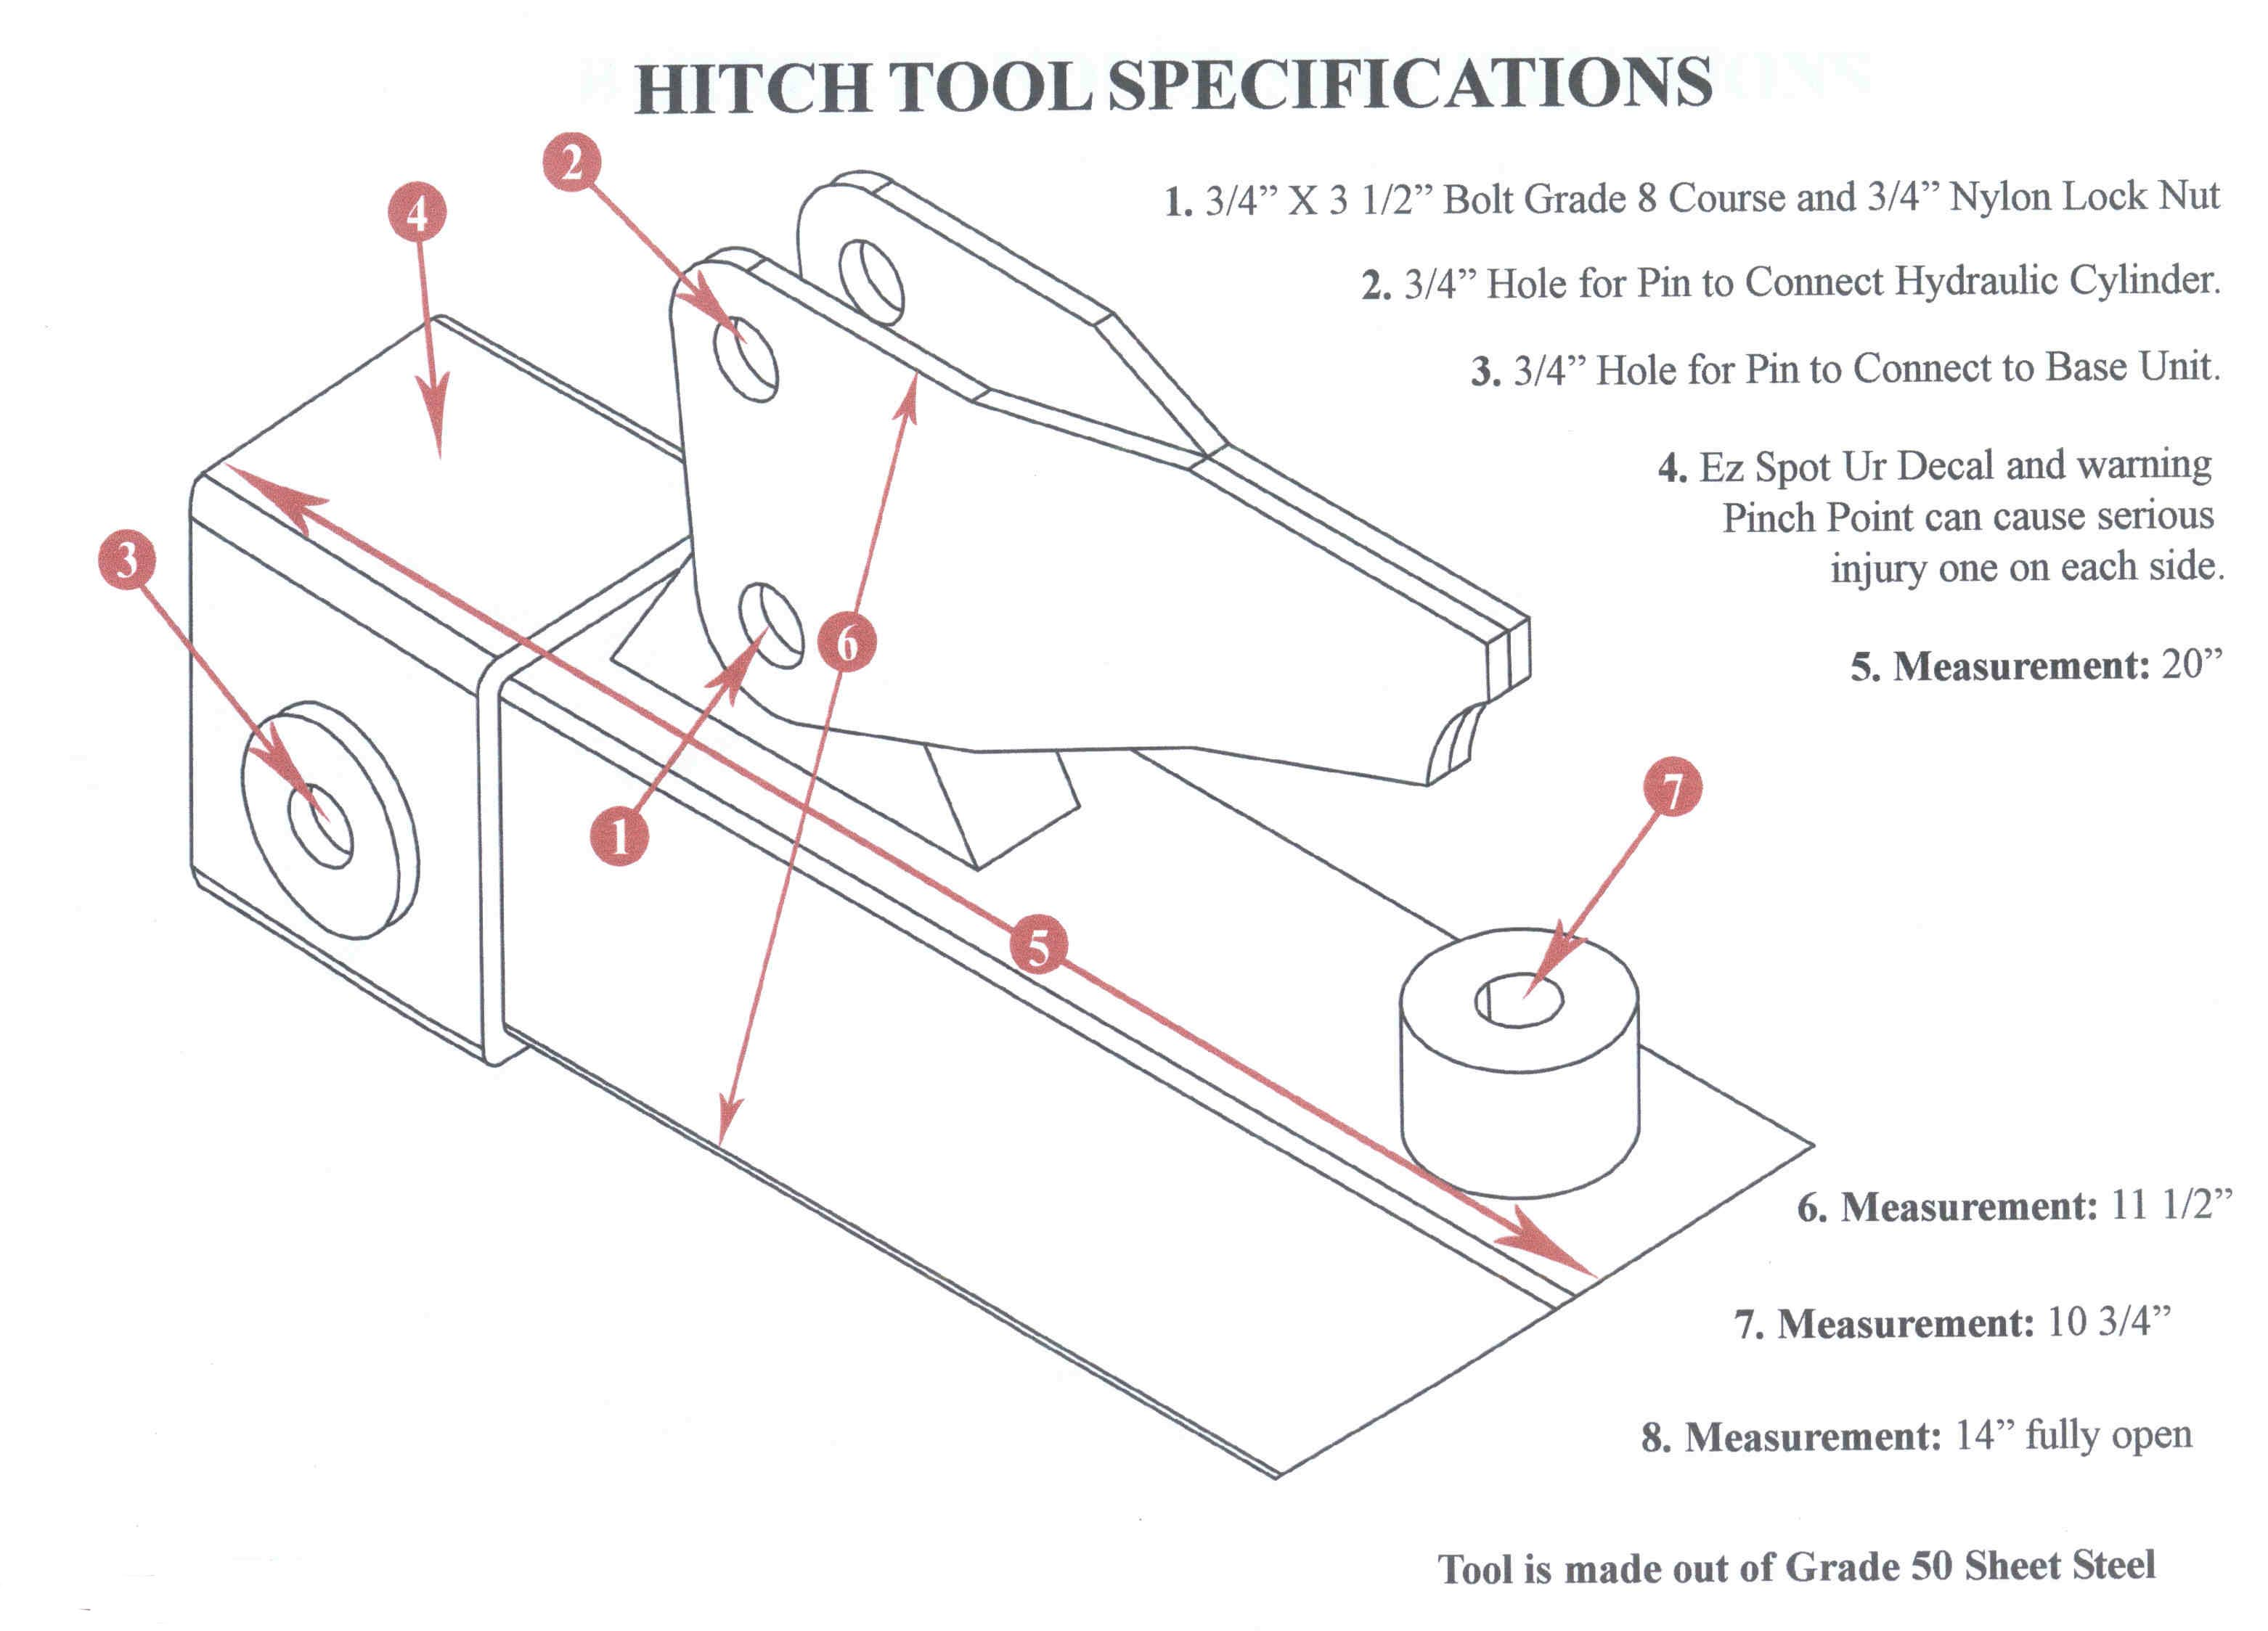 Specifications Hitch Tool